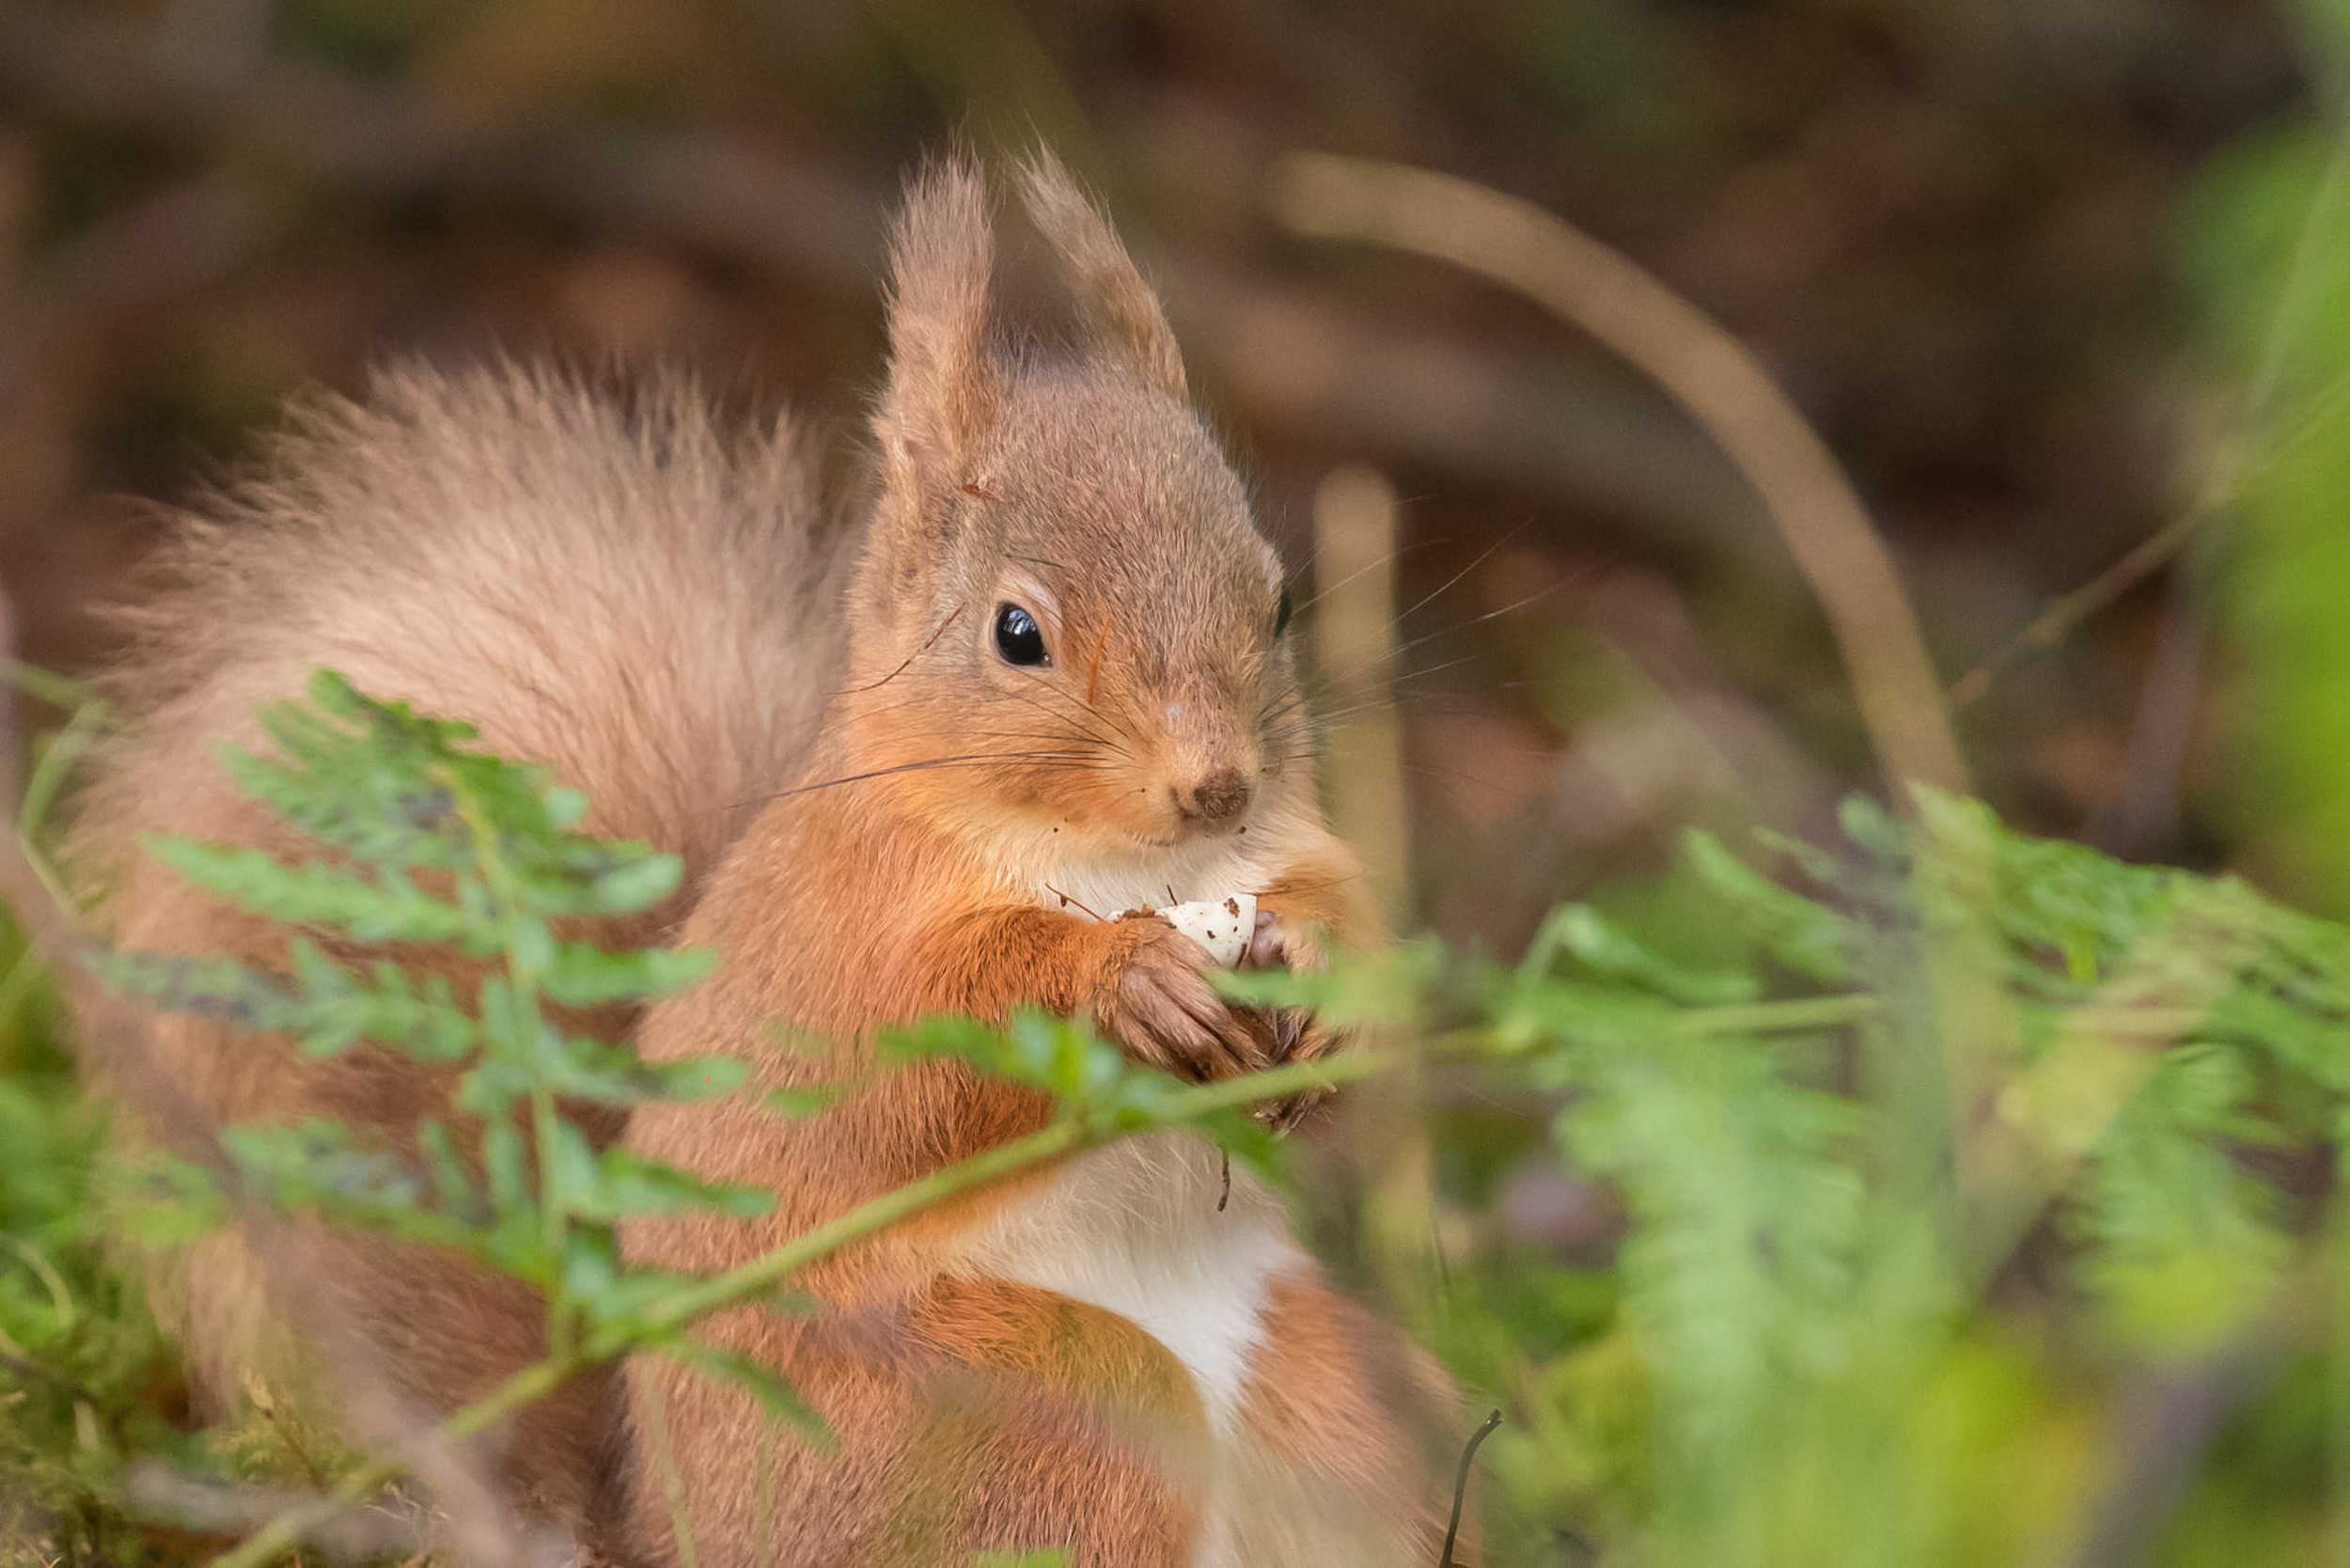 Squirrel dancing with twig - Nature News Scotland